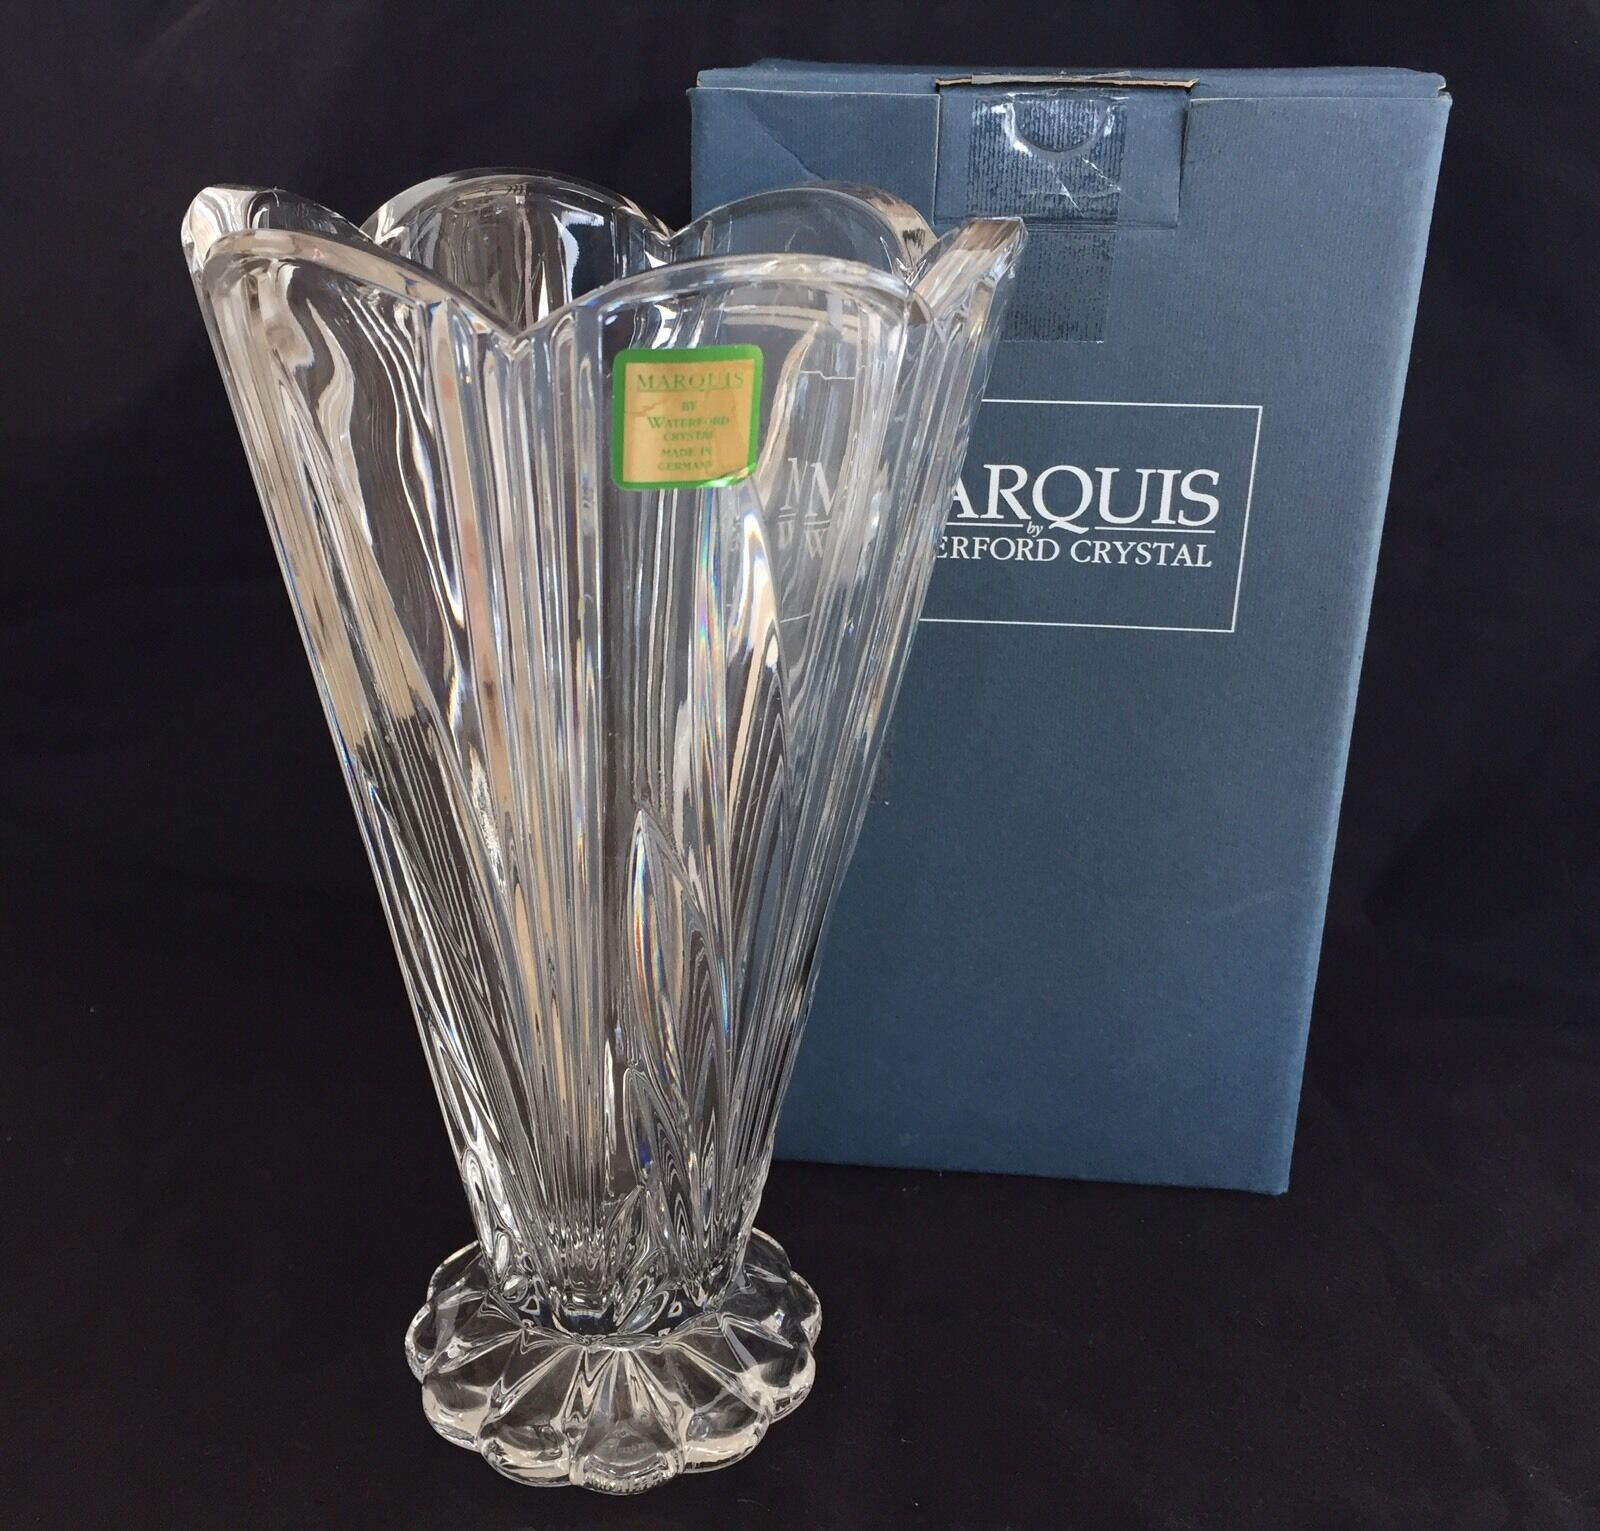 Marquis by waterford crystal 8 footed vase with scalloped rim marquis by waterford crystal 8 footed vase with scalloped rim made in germany ebay reviewsmspy